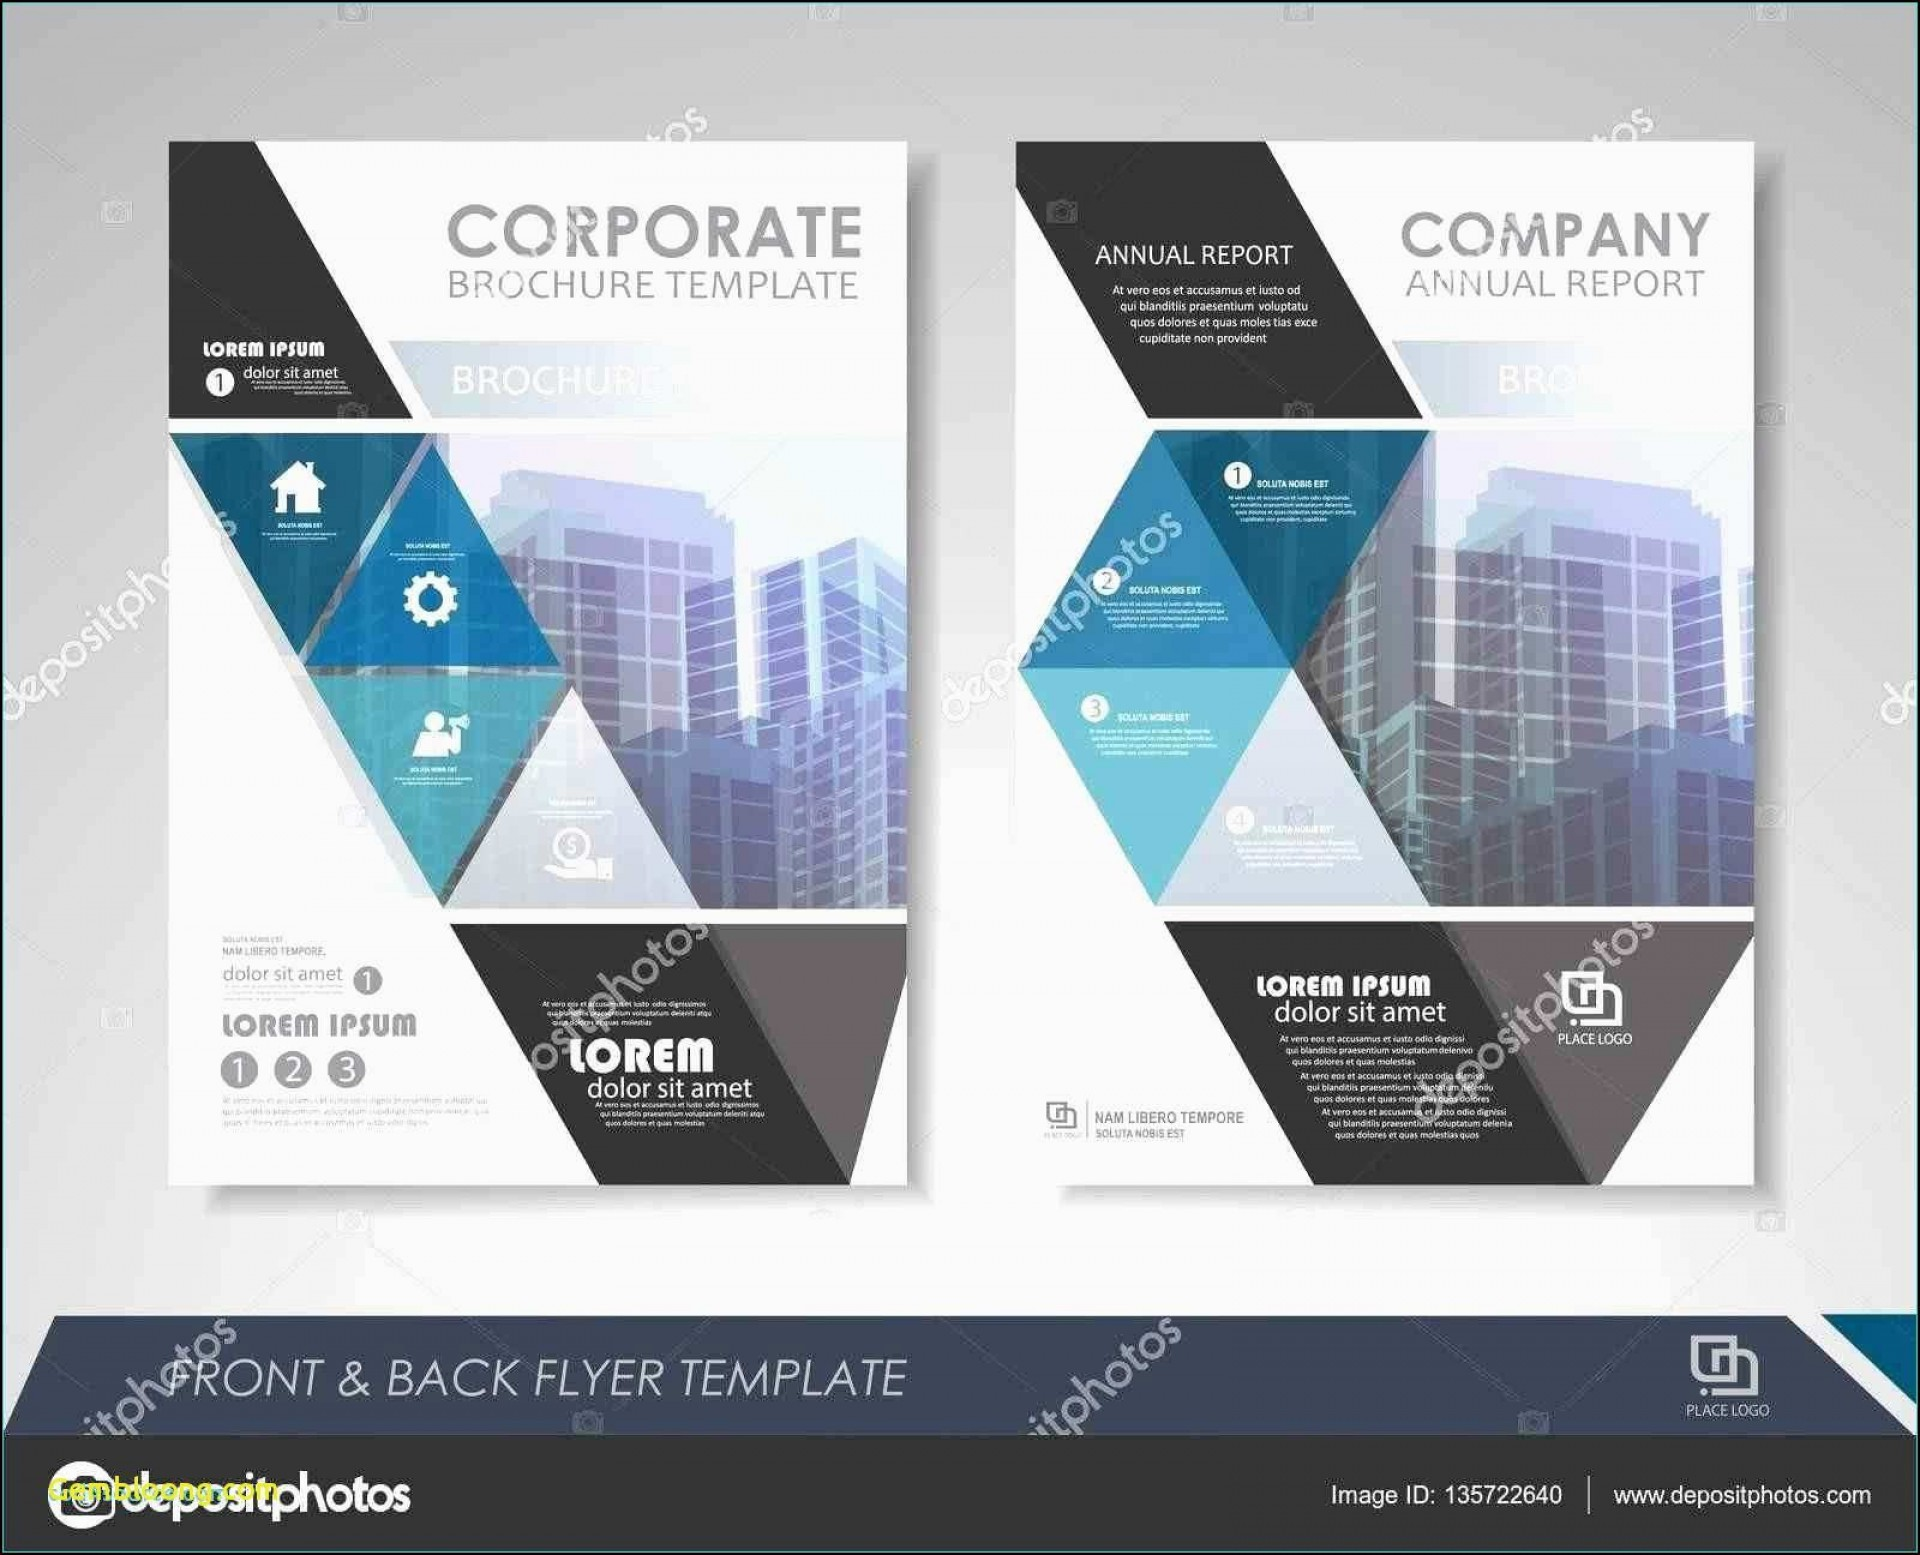 002 Awesome Photoshop Brochure Design Template Free Download High Def 1920